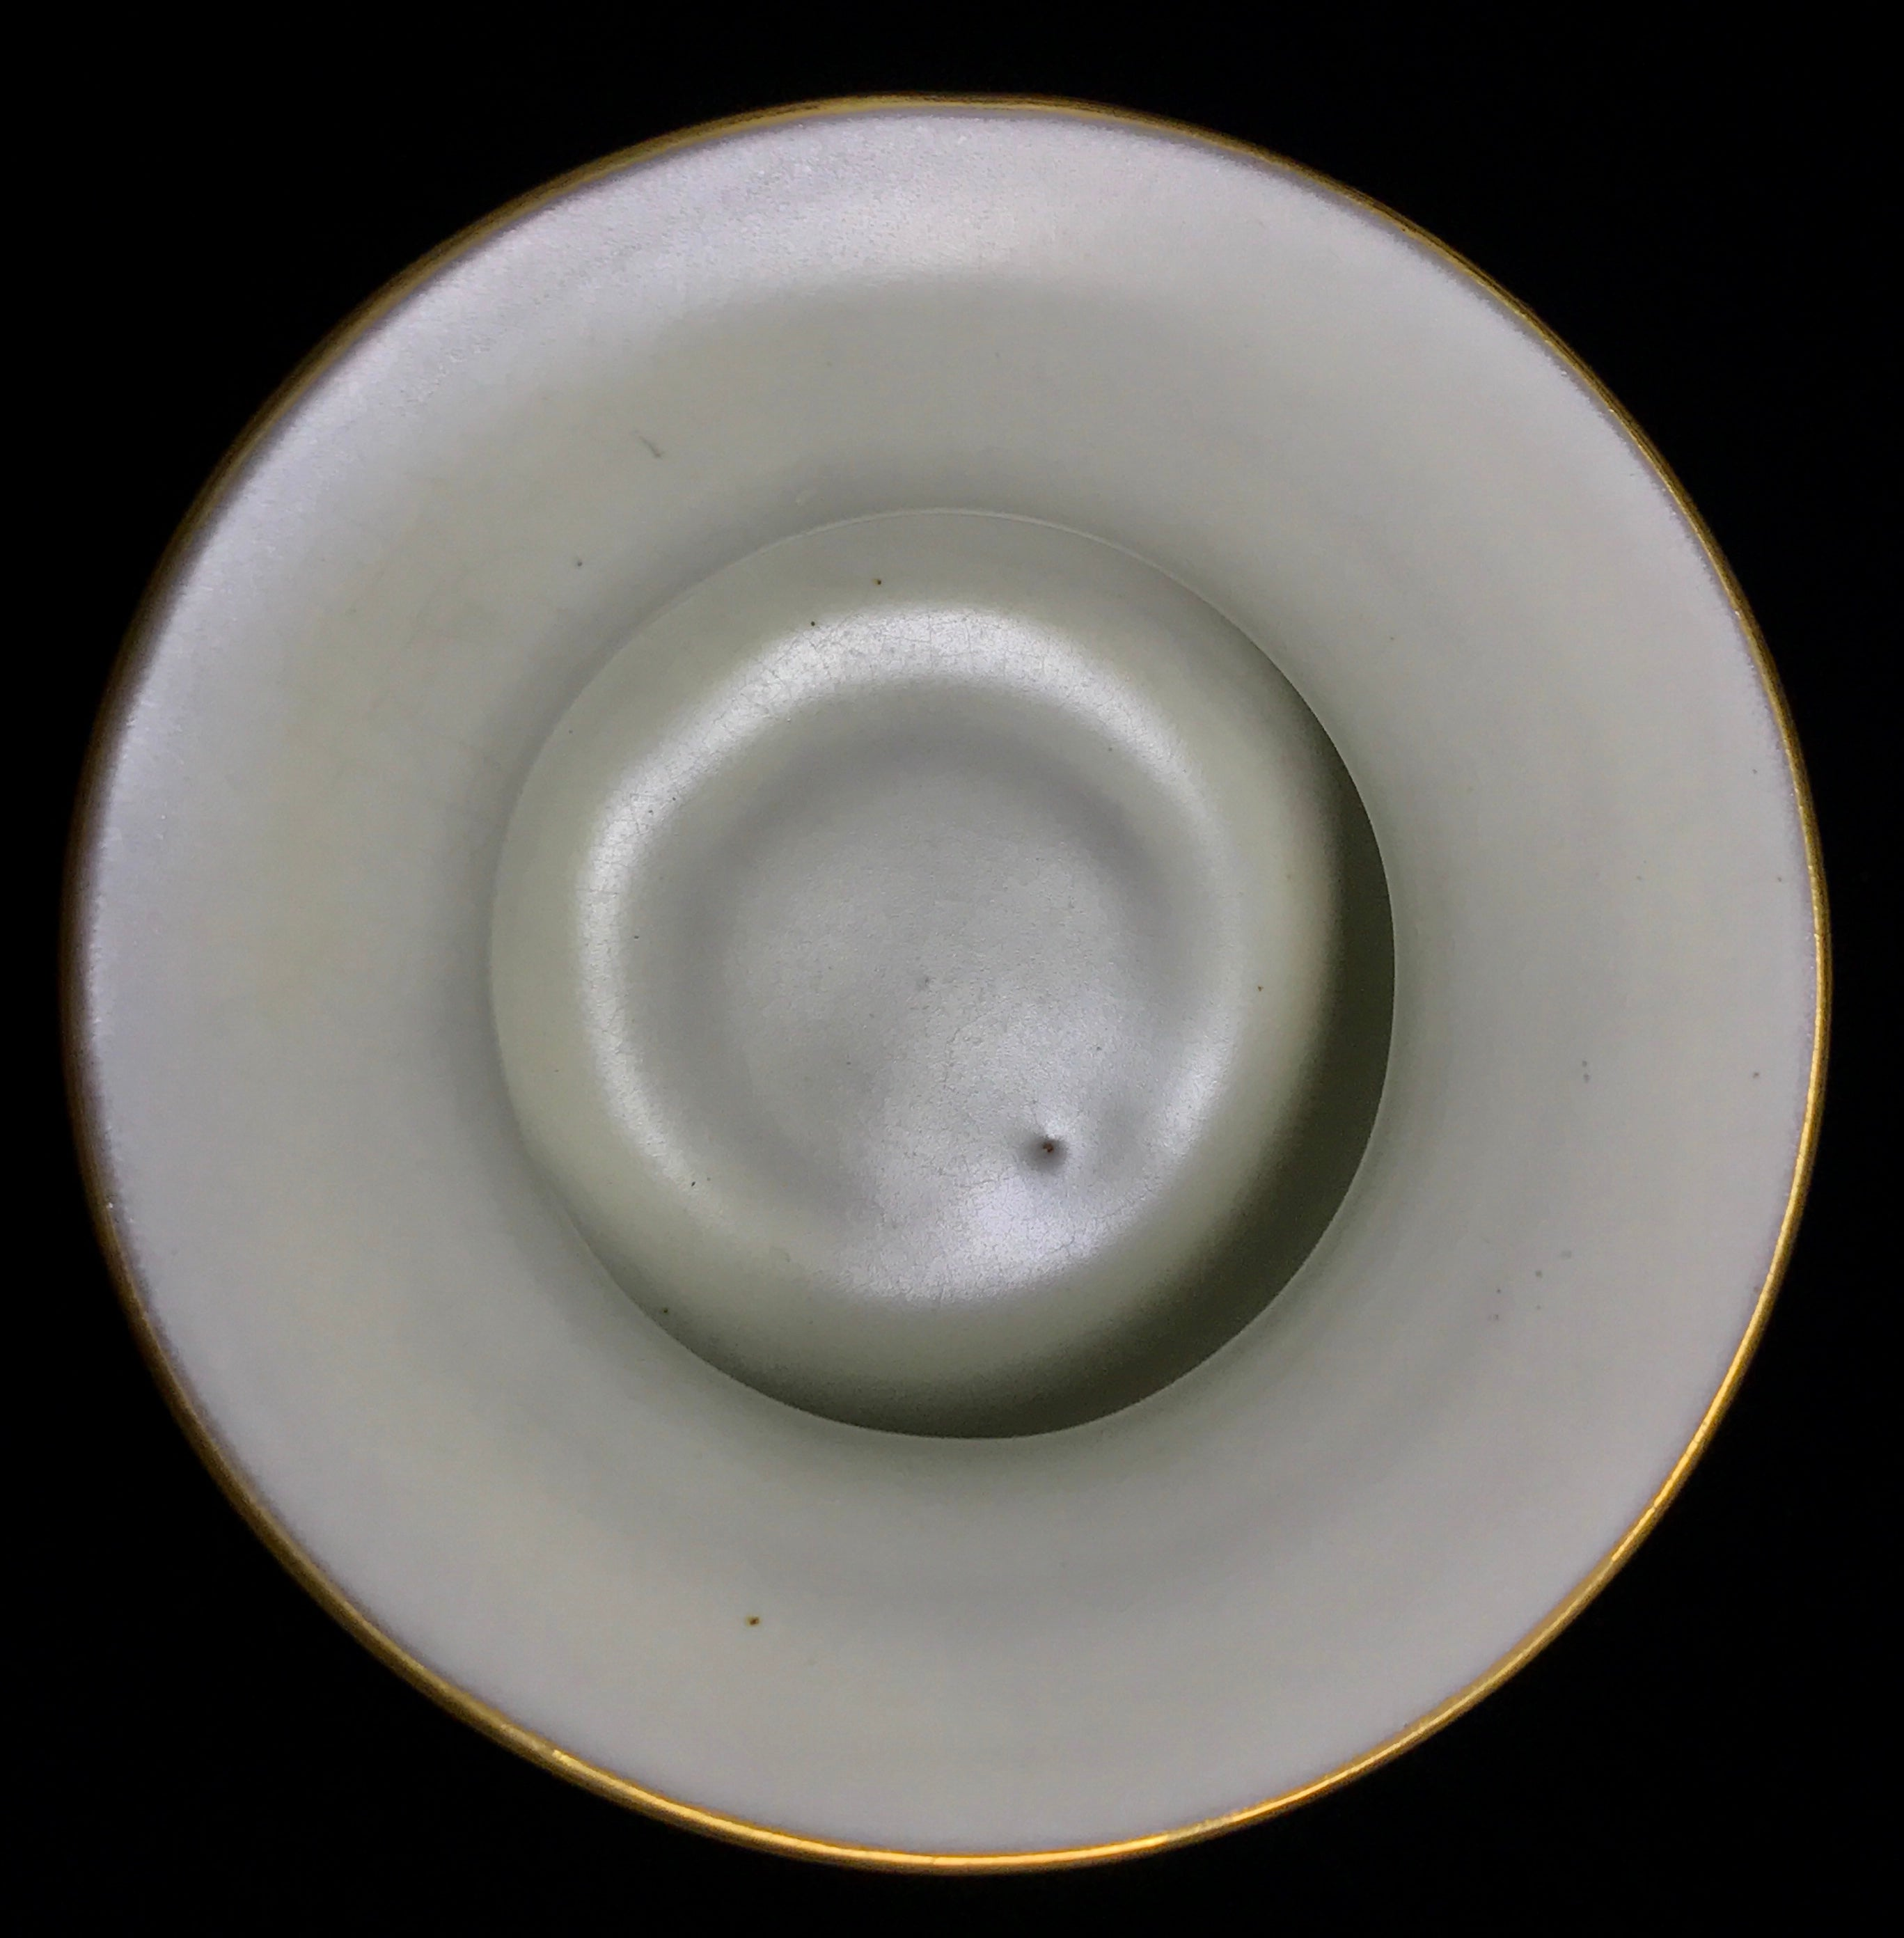 Song Dynasty Zhadou / Spitoon with Huizong Gold Seal - 10 Dynasties